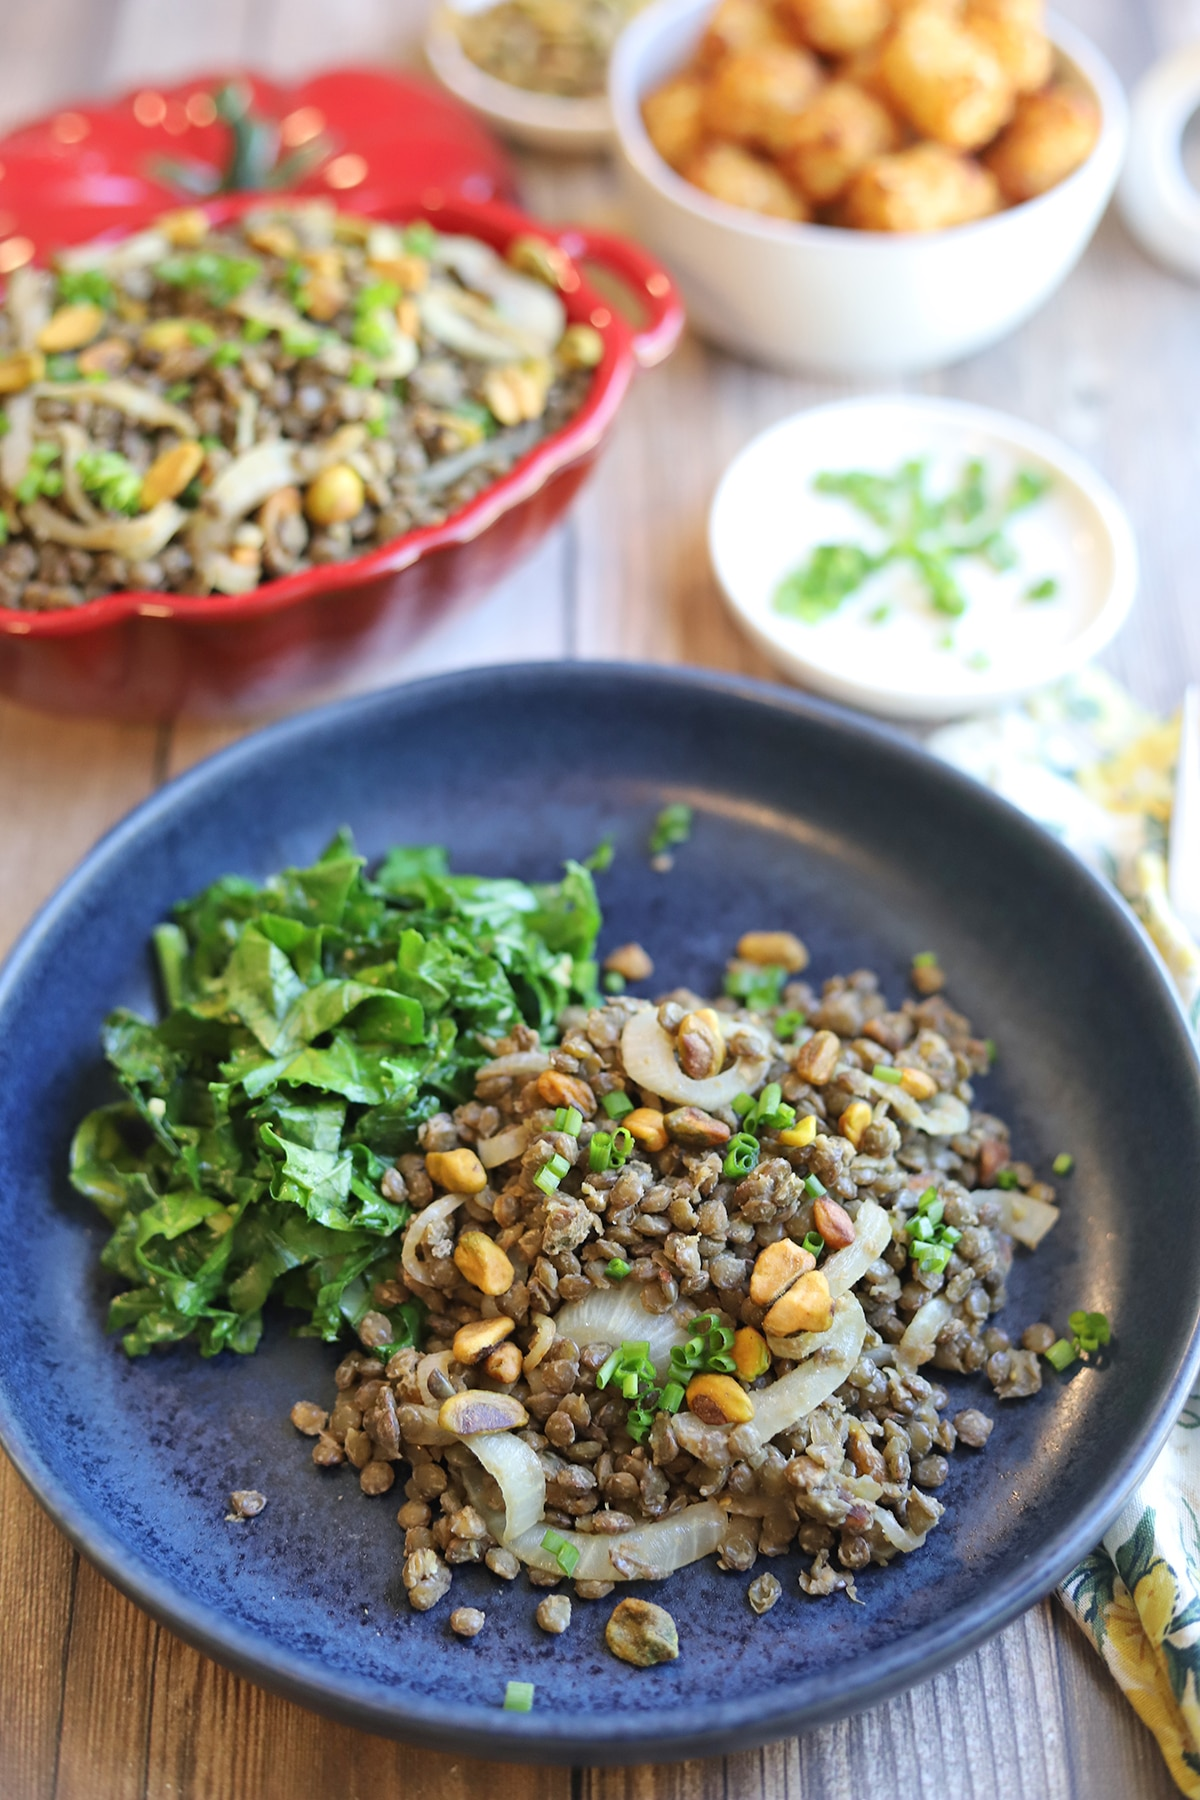 Blue plate with sauteed kale and lentils.